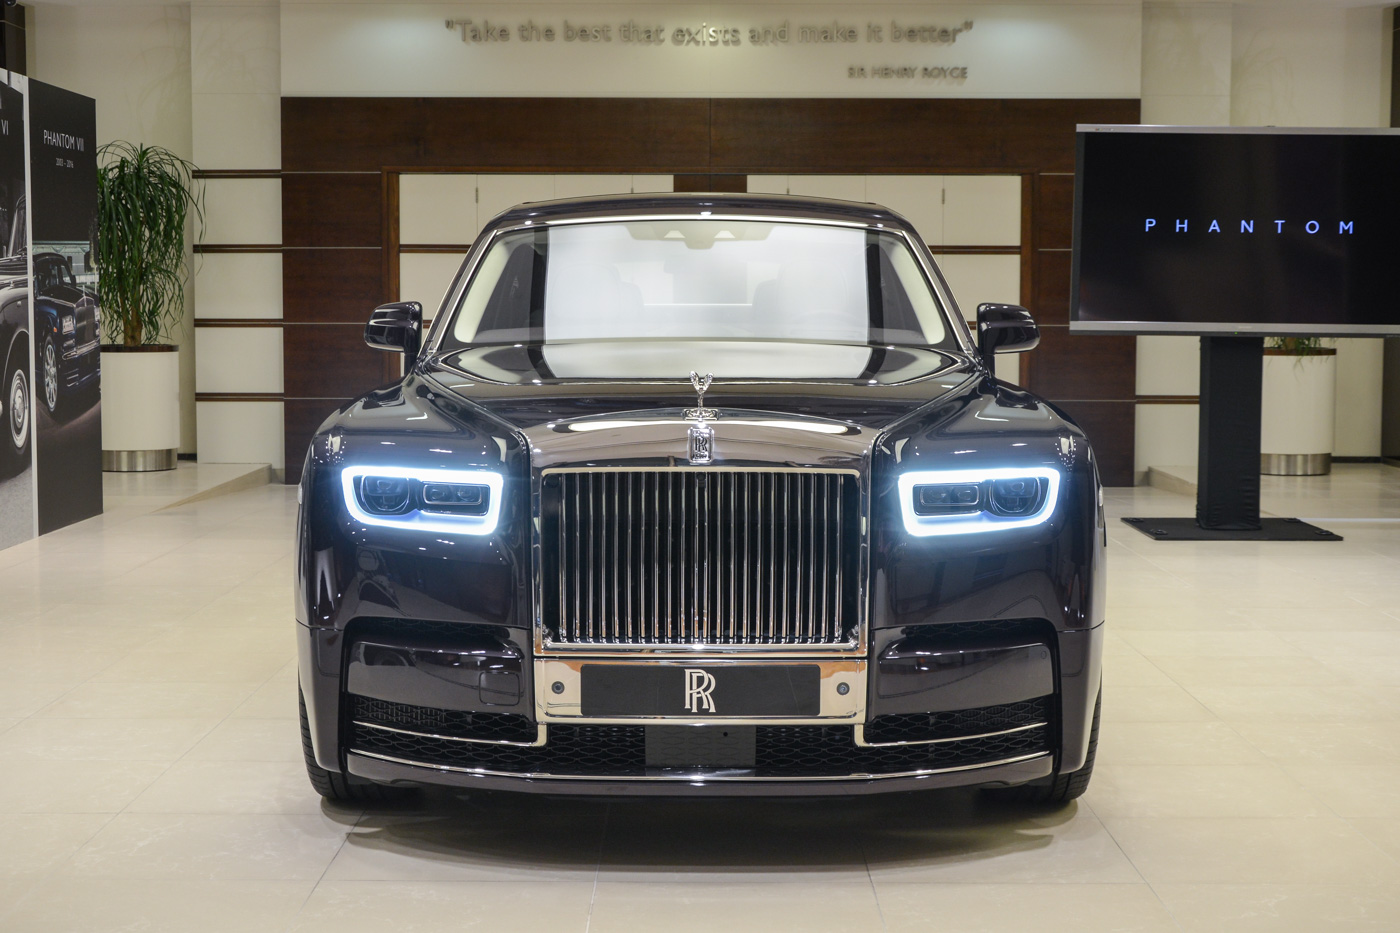 2018 rolls royce phantom makes middle eastern debut uae. Black Bedroom Furniture Sets. Home Design Ideas